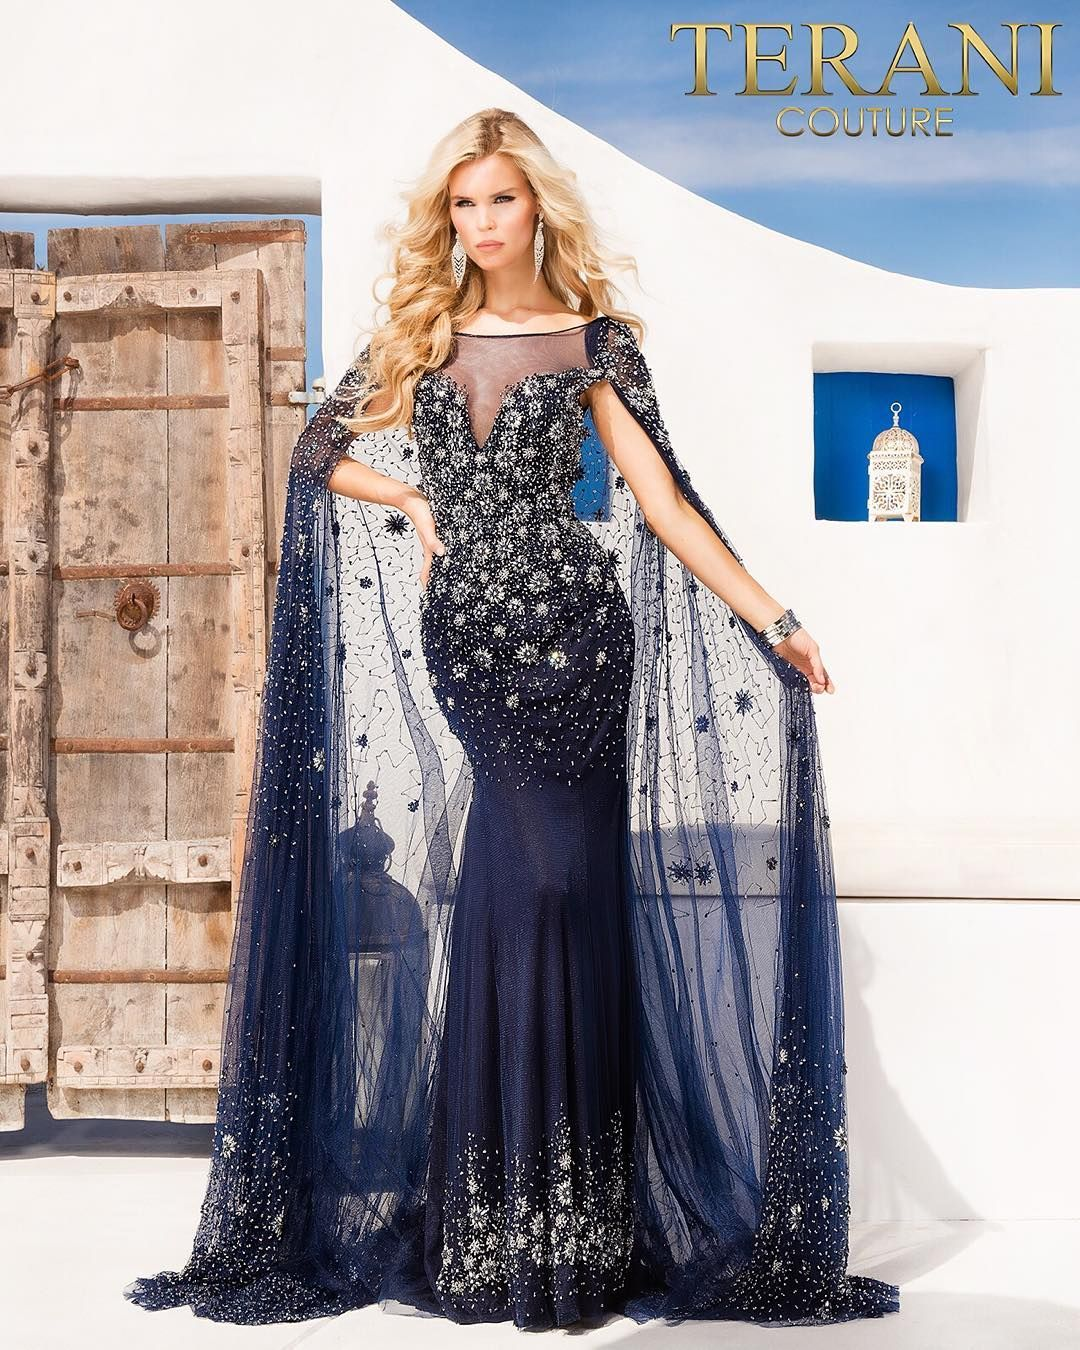 88db7fef91a Make an alarming entrance in this Starry Night Beaded Evening Gown by  Terani Couture. This one of a kind dress features an illusion bateau  neckline